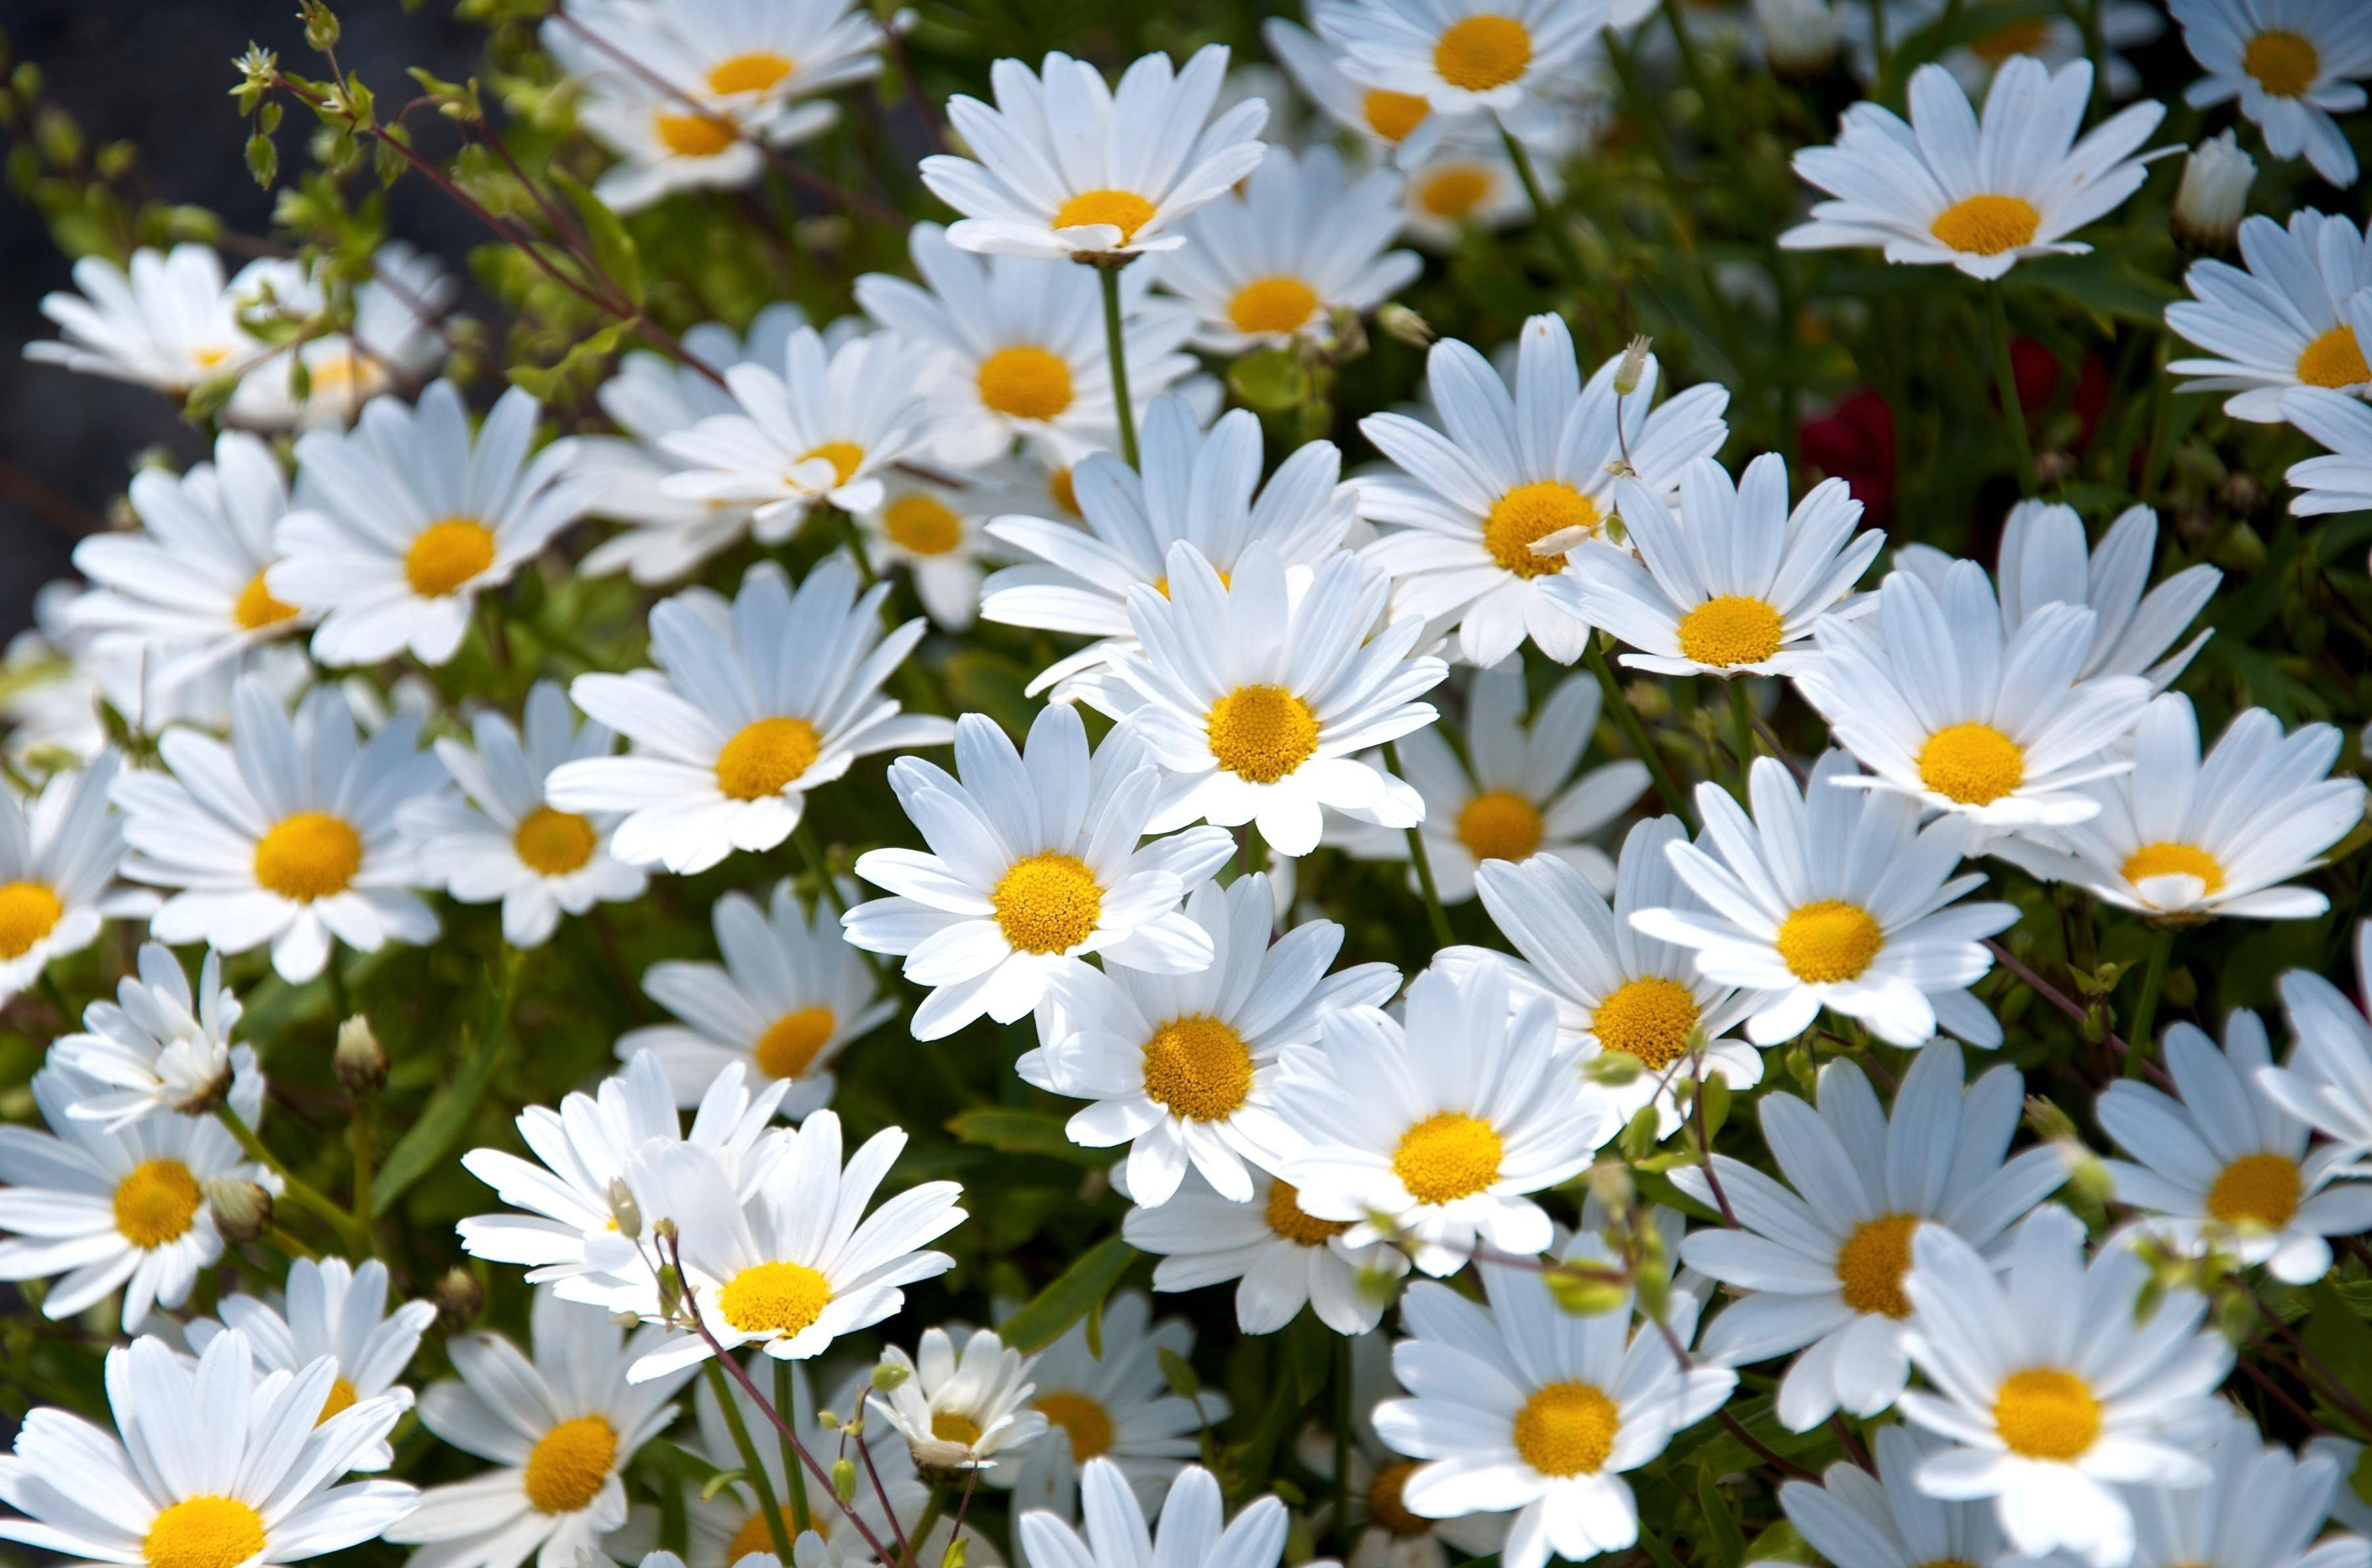 Daisy archives stephen morris author april daisies dhlflorist Choice Image